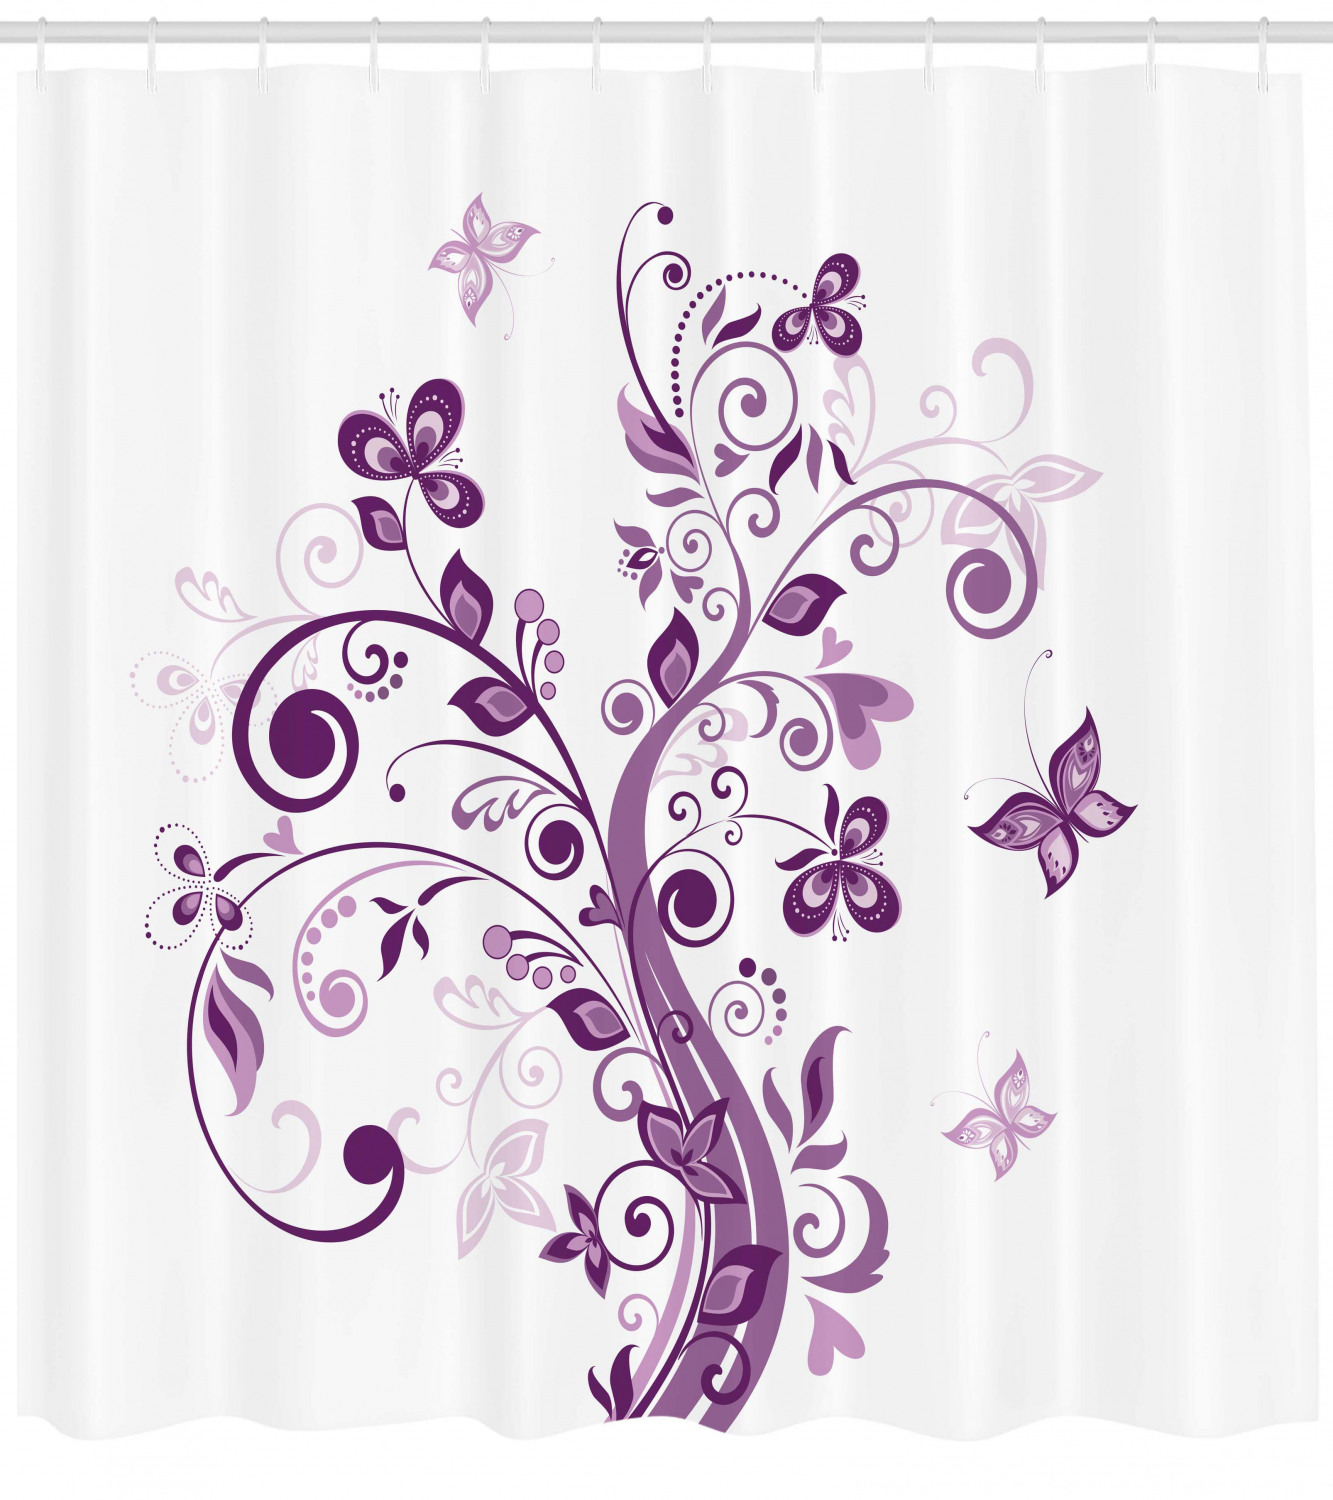 Mauve Shower Curtain Tree With Swirled Branches And Flowers Leaf Butterfly Bridal Inspirations Theme Fabric Bathroom Set With Hooks Purple White